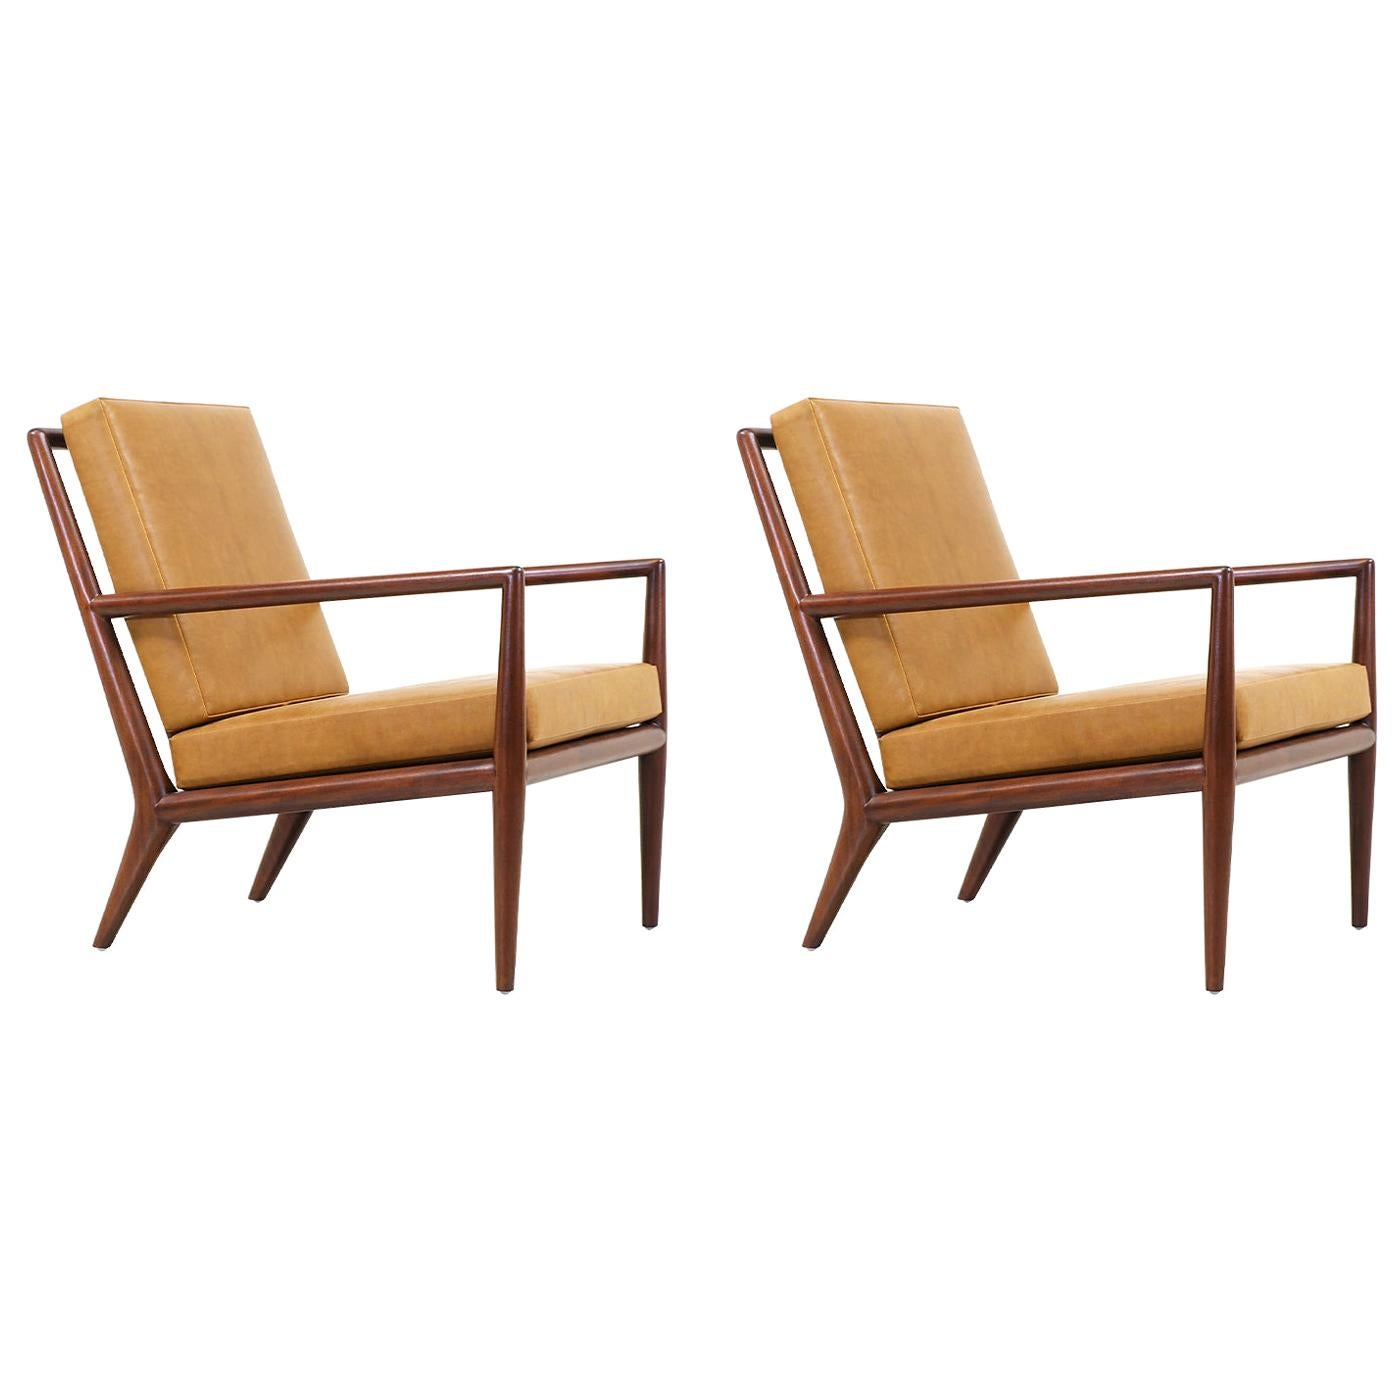 T.H. Robsjohn-Gibbings Leather Lounge Chairs for Widdicomb